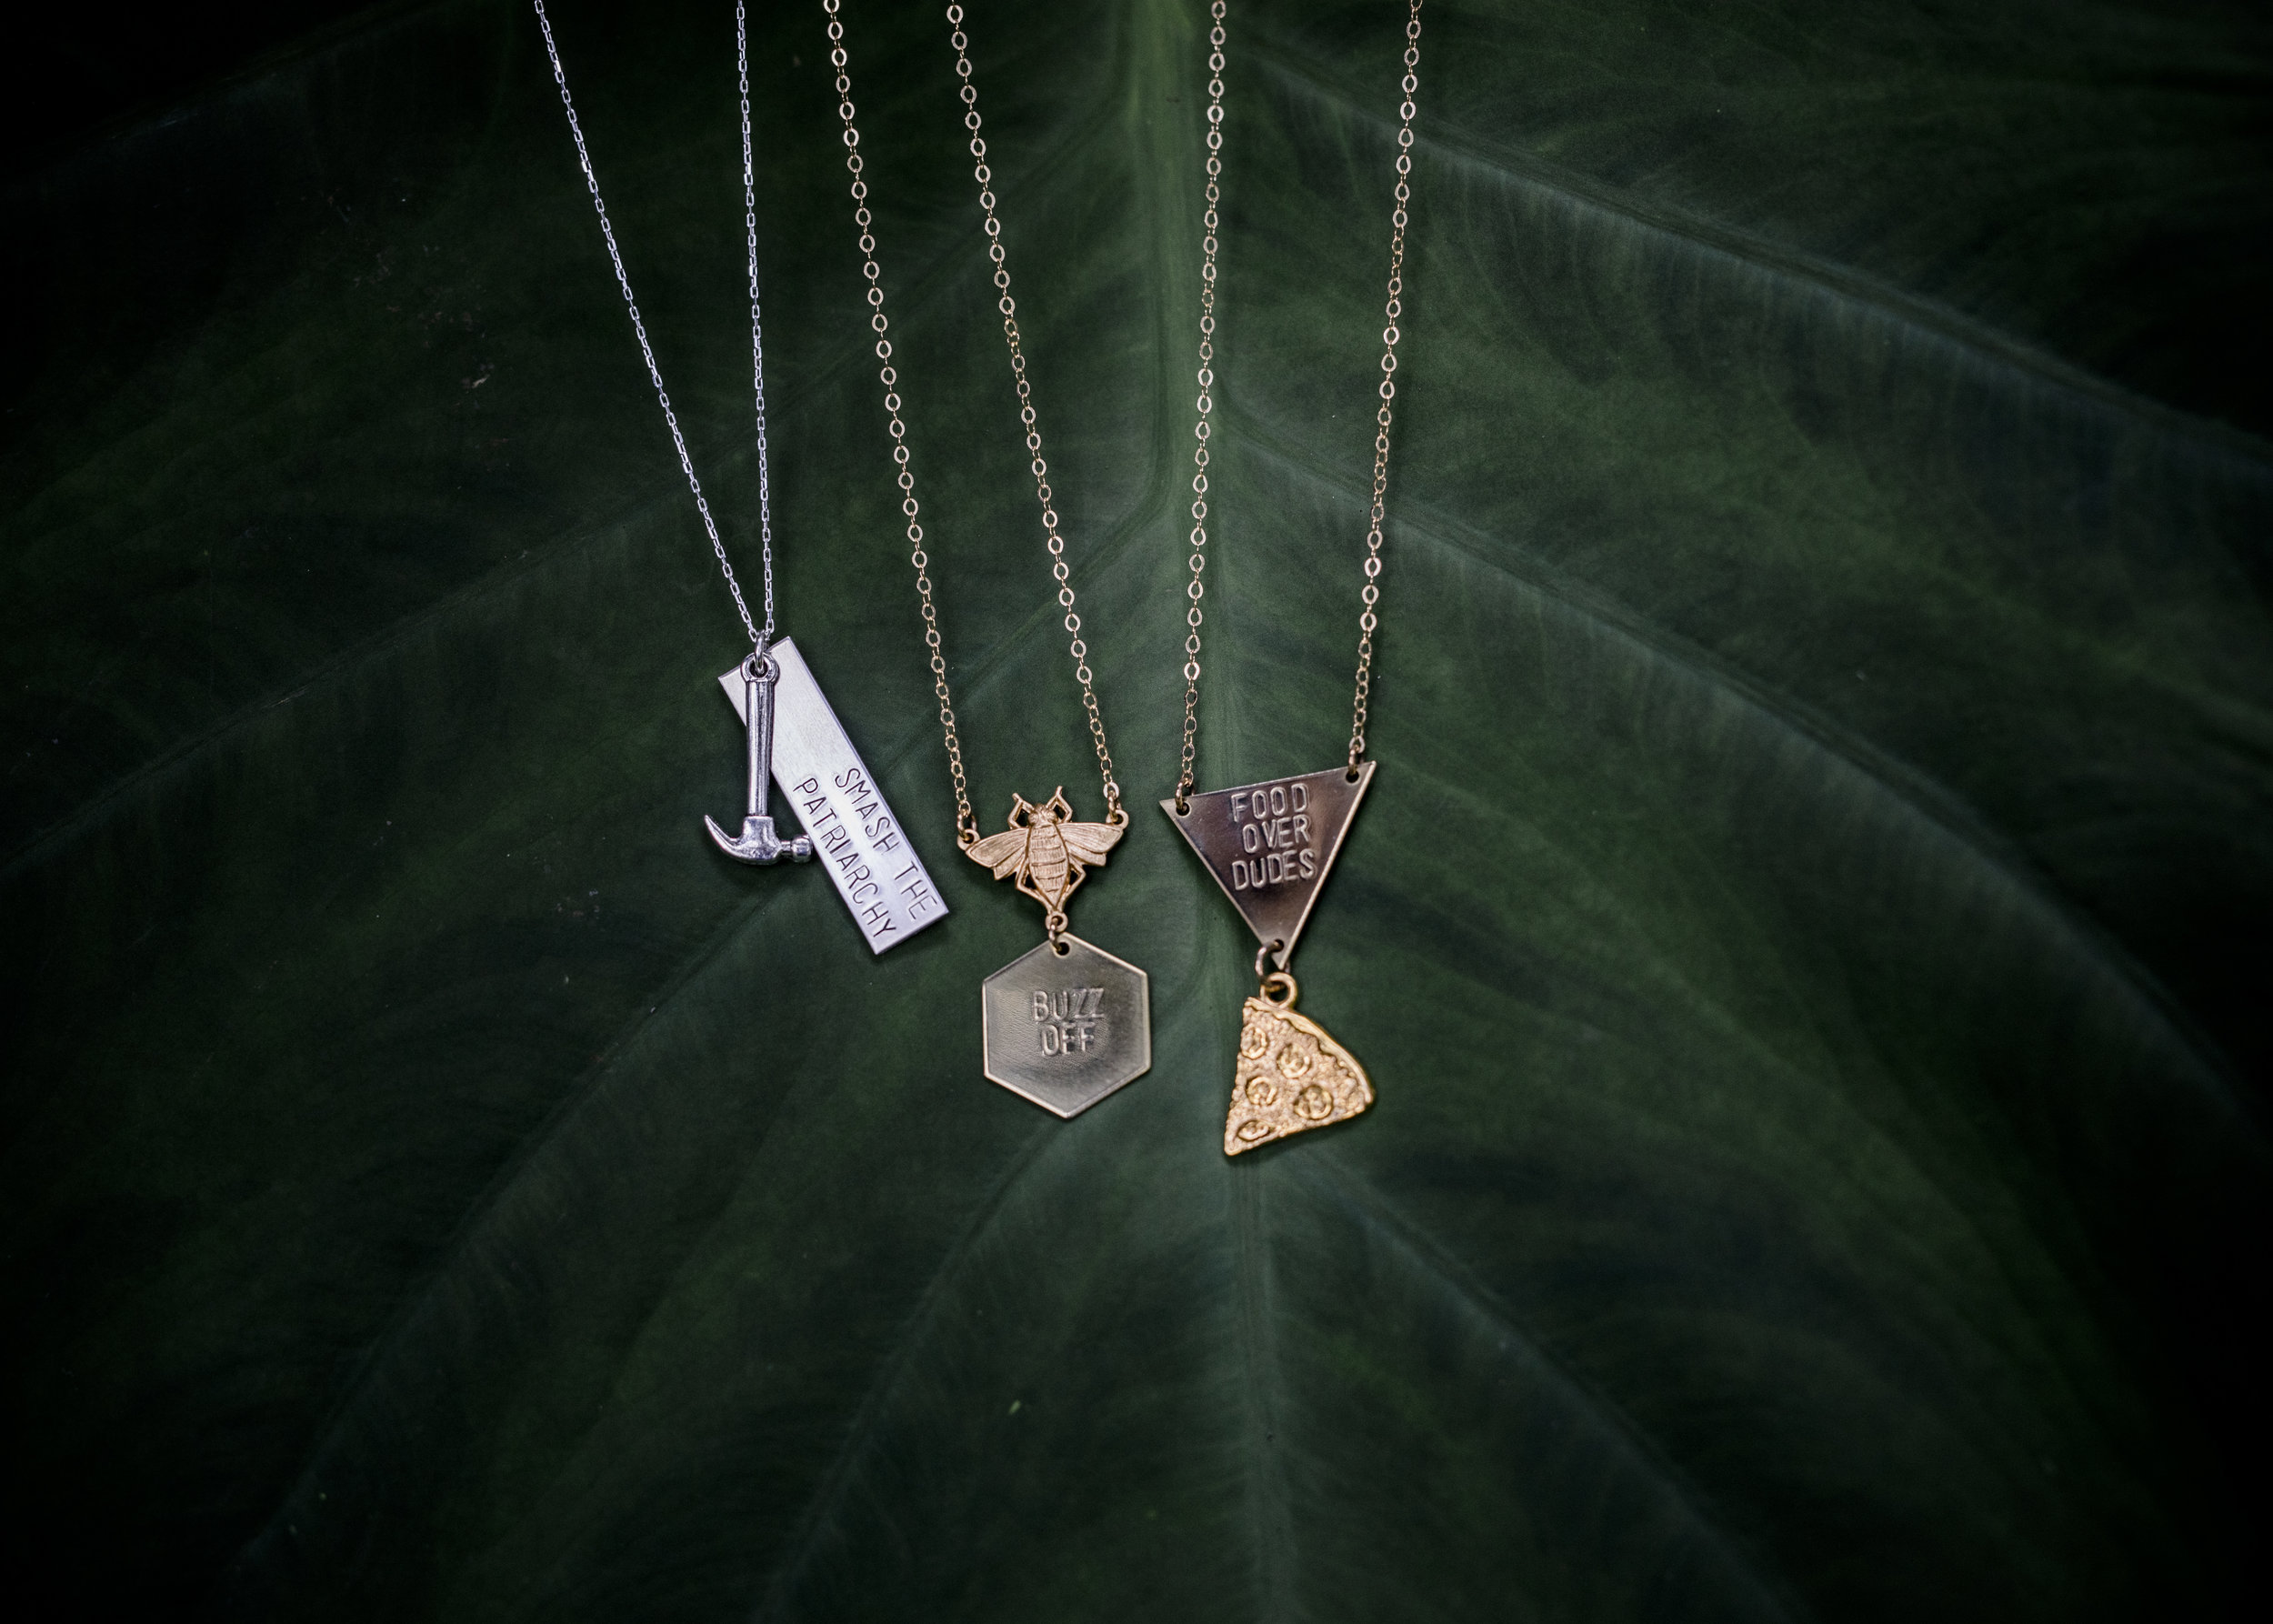 Smash the Patriarchy, Buzz Off, Food Over Dudes... a few necklaces by Arkansas jewelry maker Stacey Bowers of Bang-Up Betty jewelry.